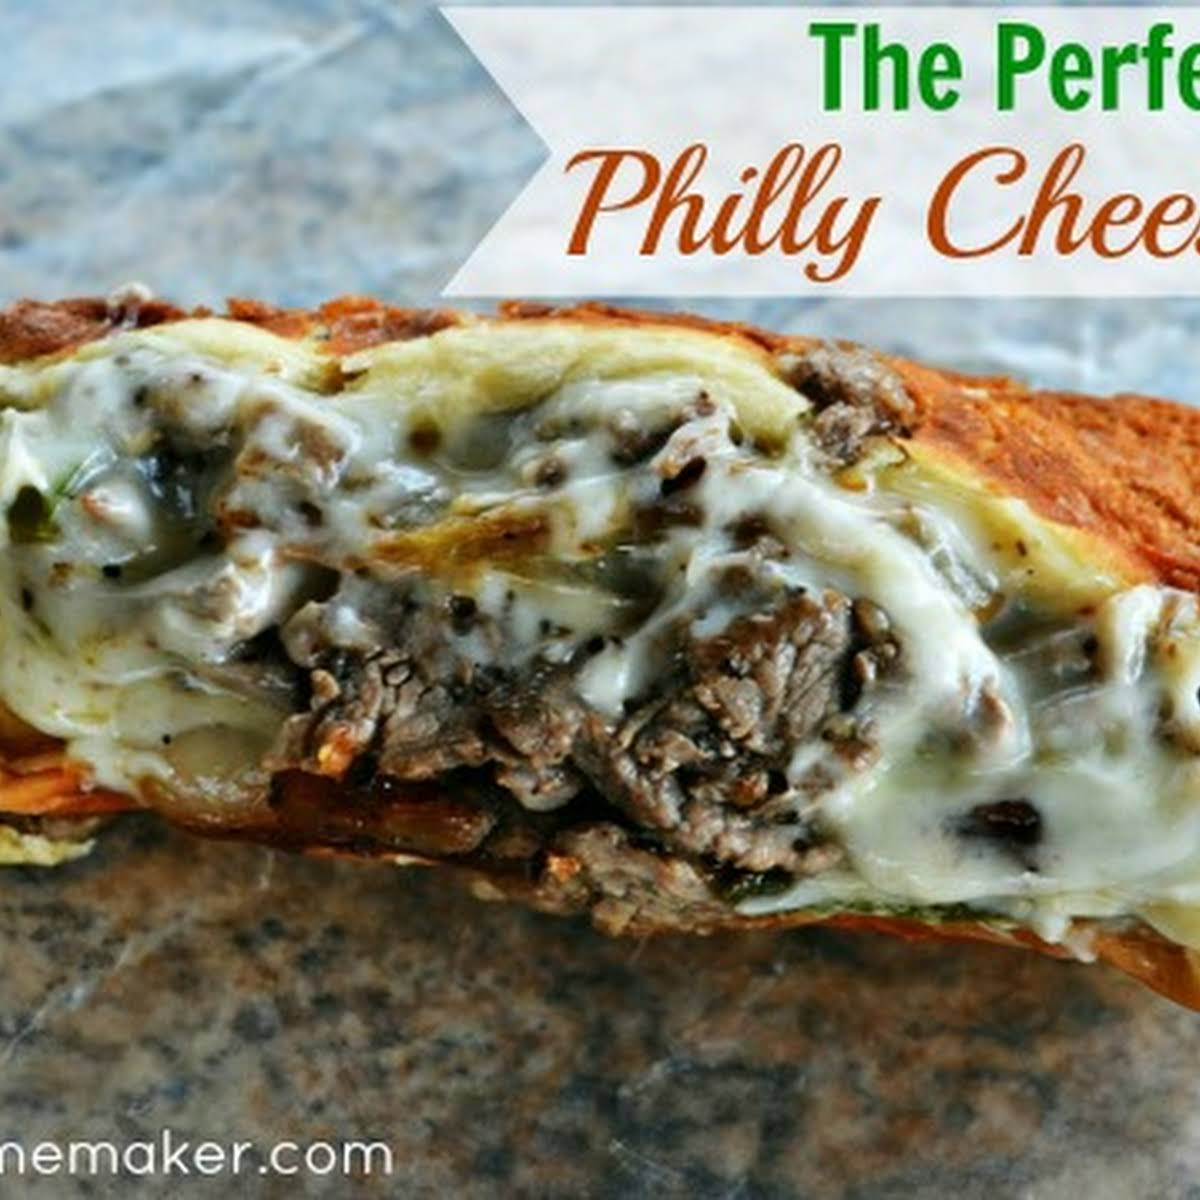 The  given Philly Cheesesteak